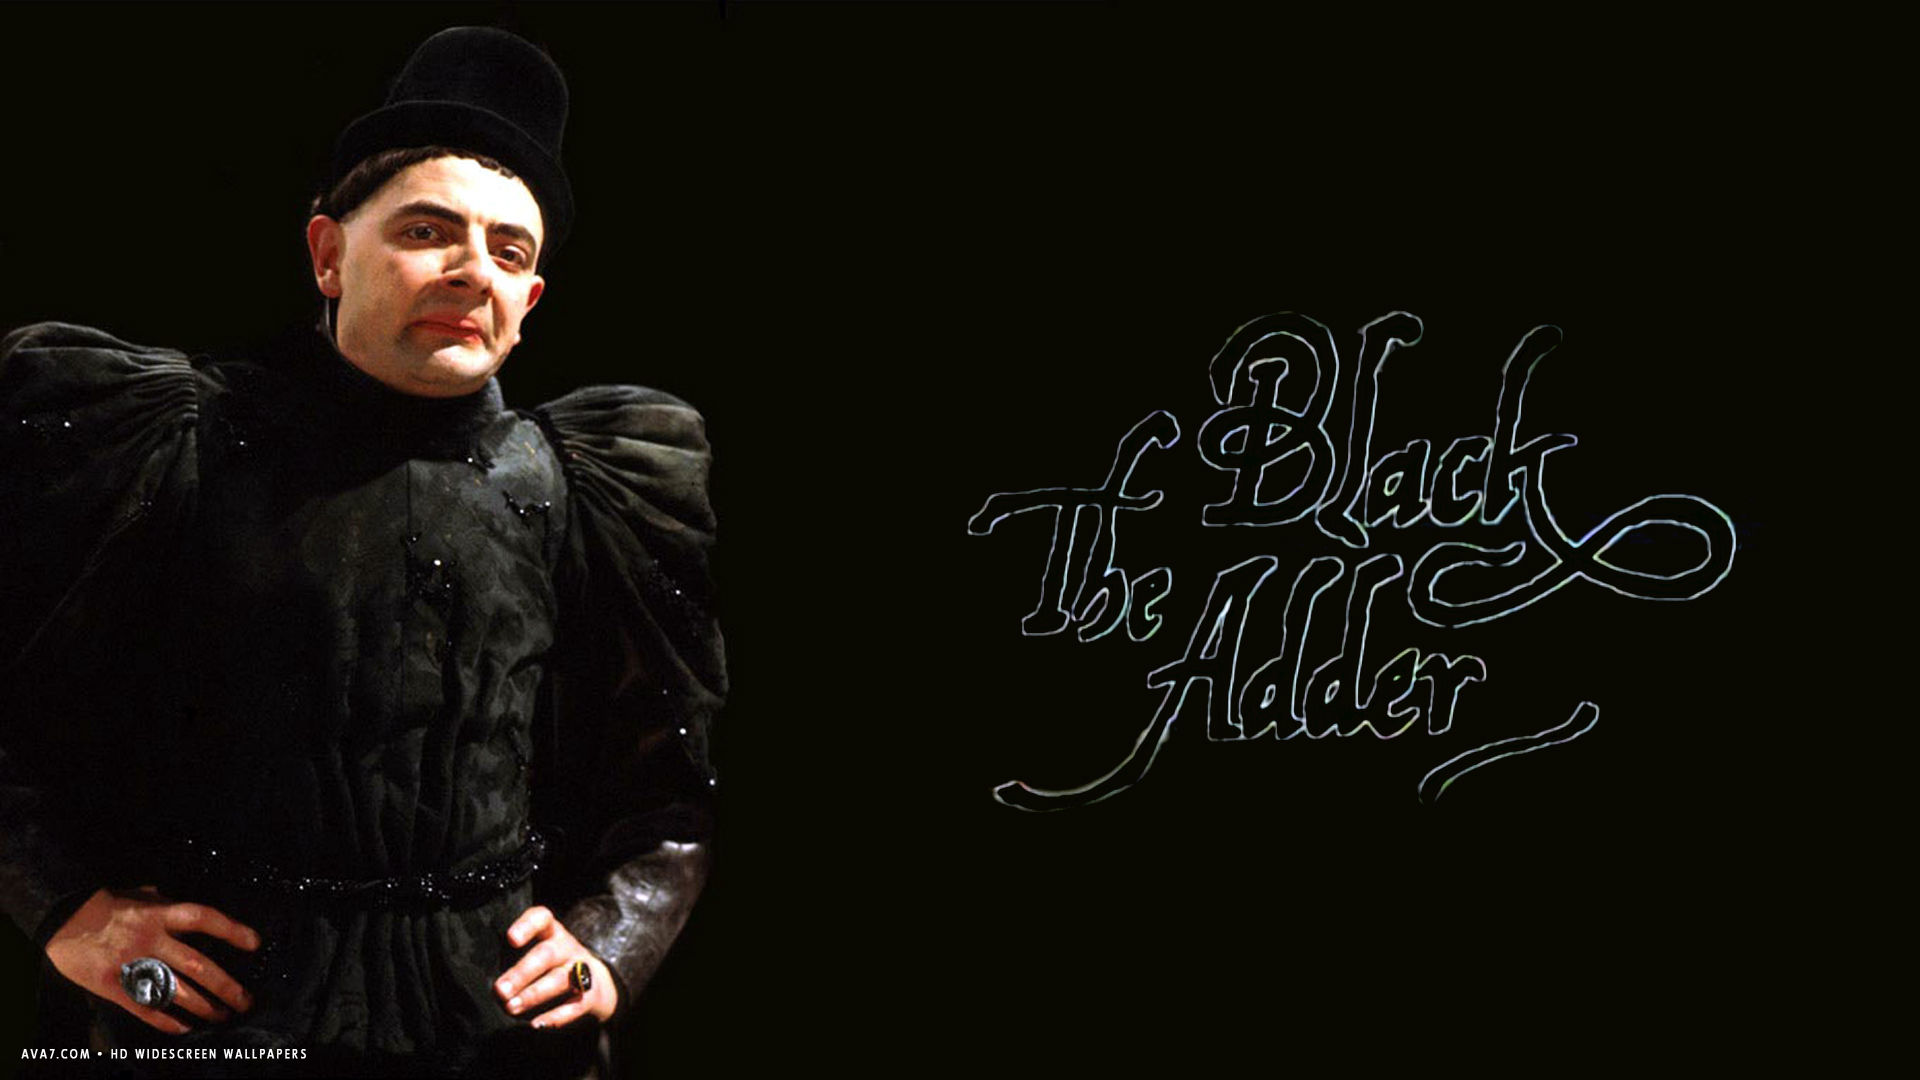 black adder tv series show hd widescreen wallpaper